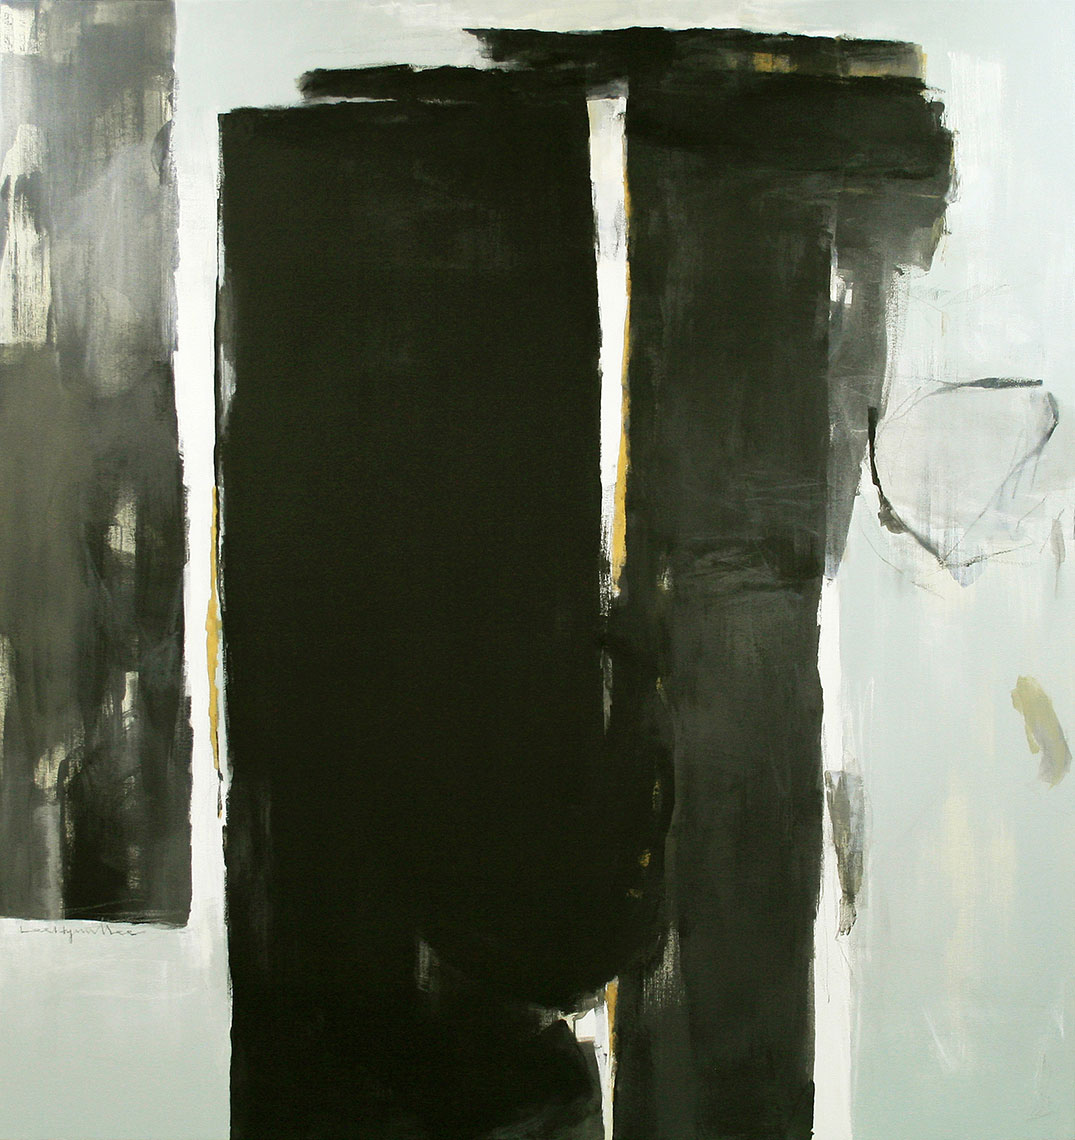 SERAPHIC STONE 8.    acrylic on canvas.   72 x 68 inches.   2007